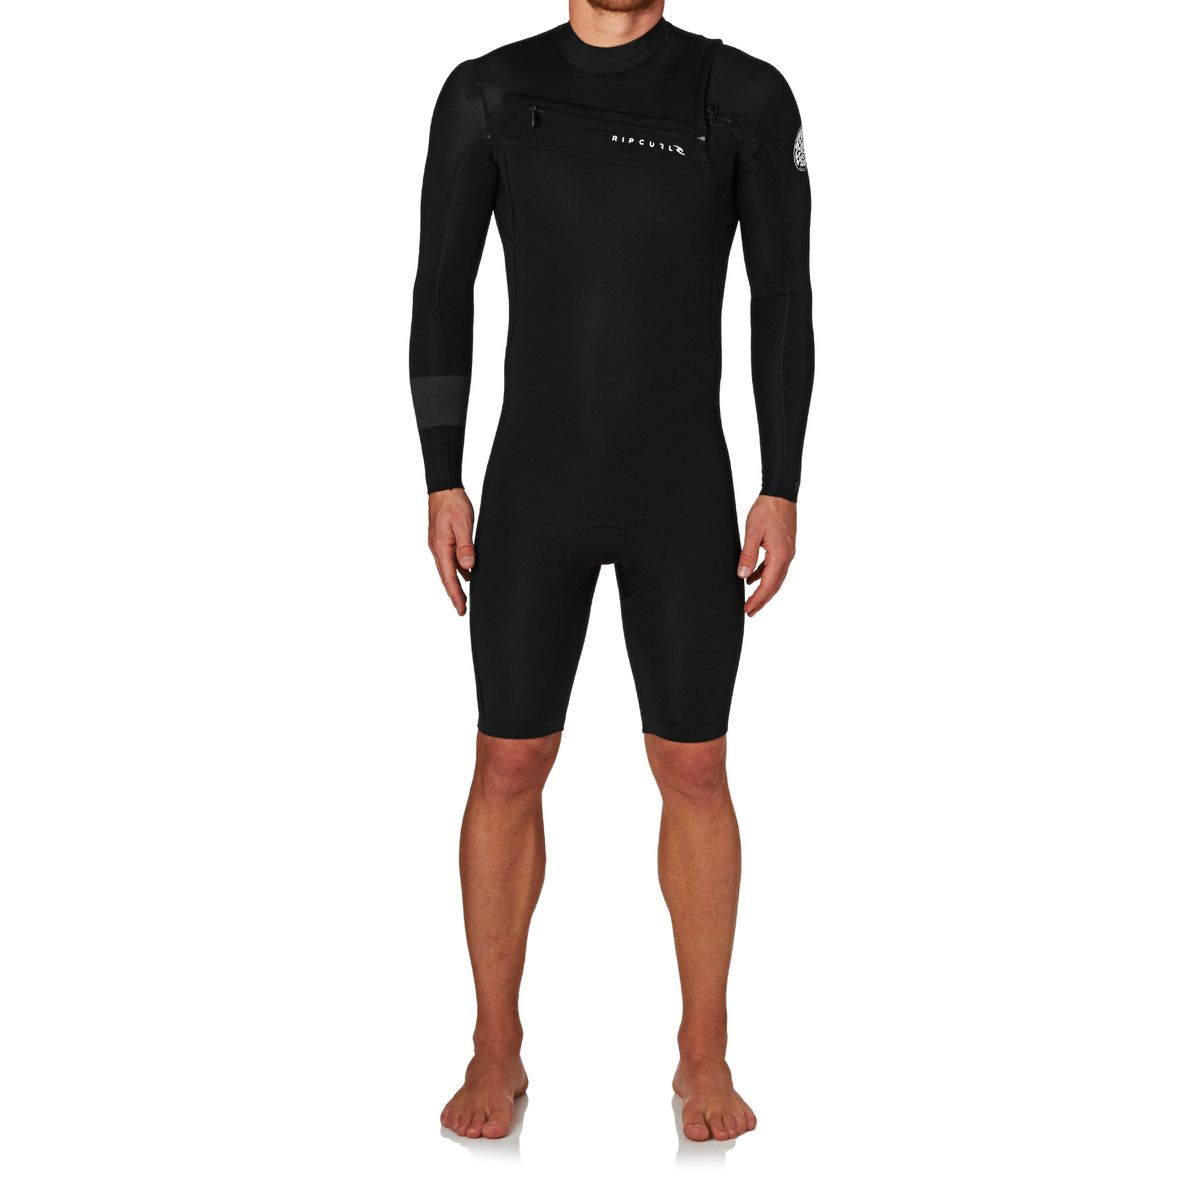 Rip Curl Aggrolite 2mm 2017 Chest Zip Long Sleeve Shorty Wetsuit - Black